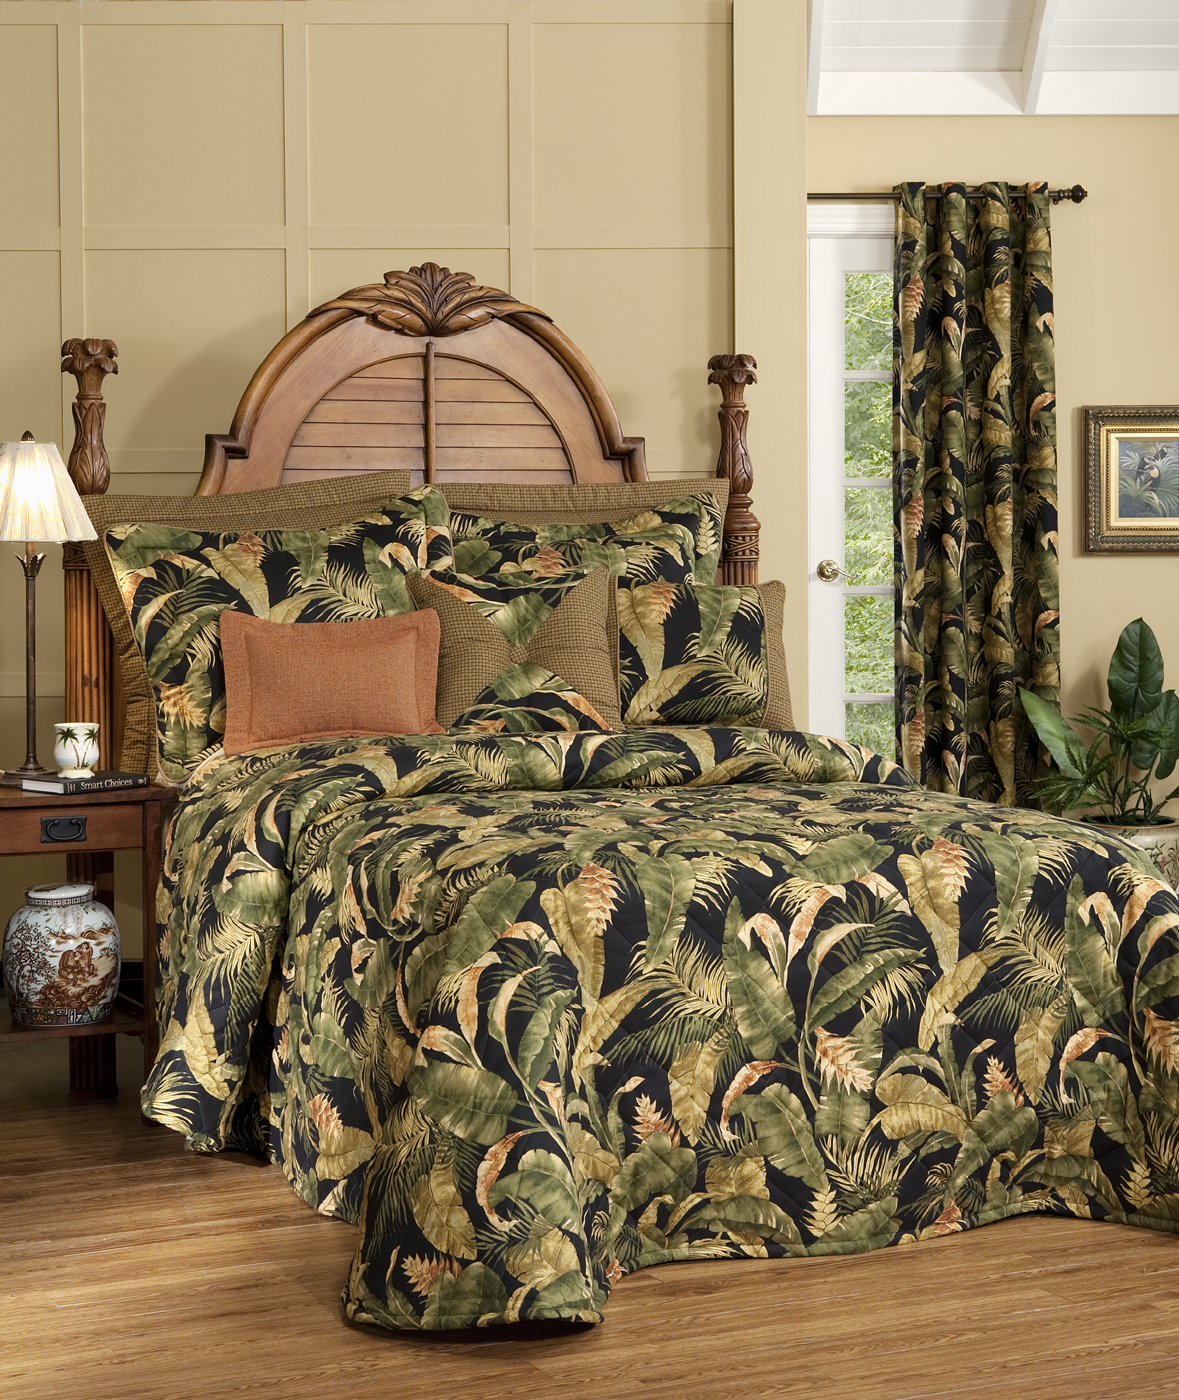 Quilted Bedspread - La Selva Black by Thomasville